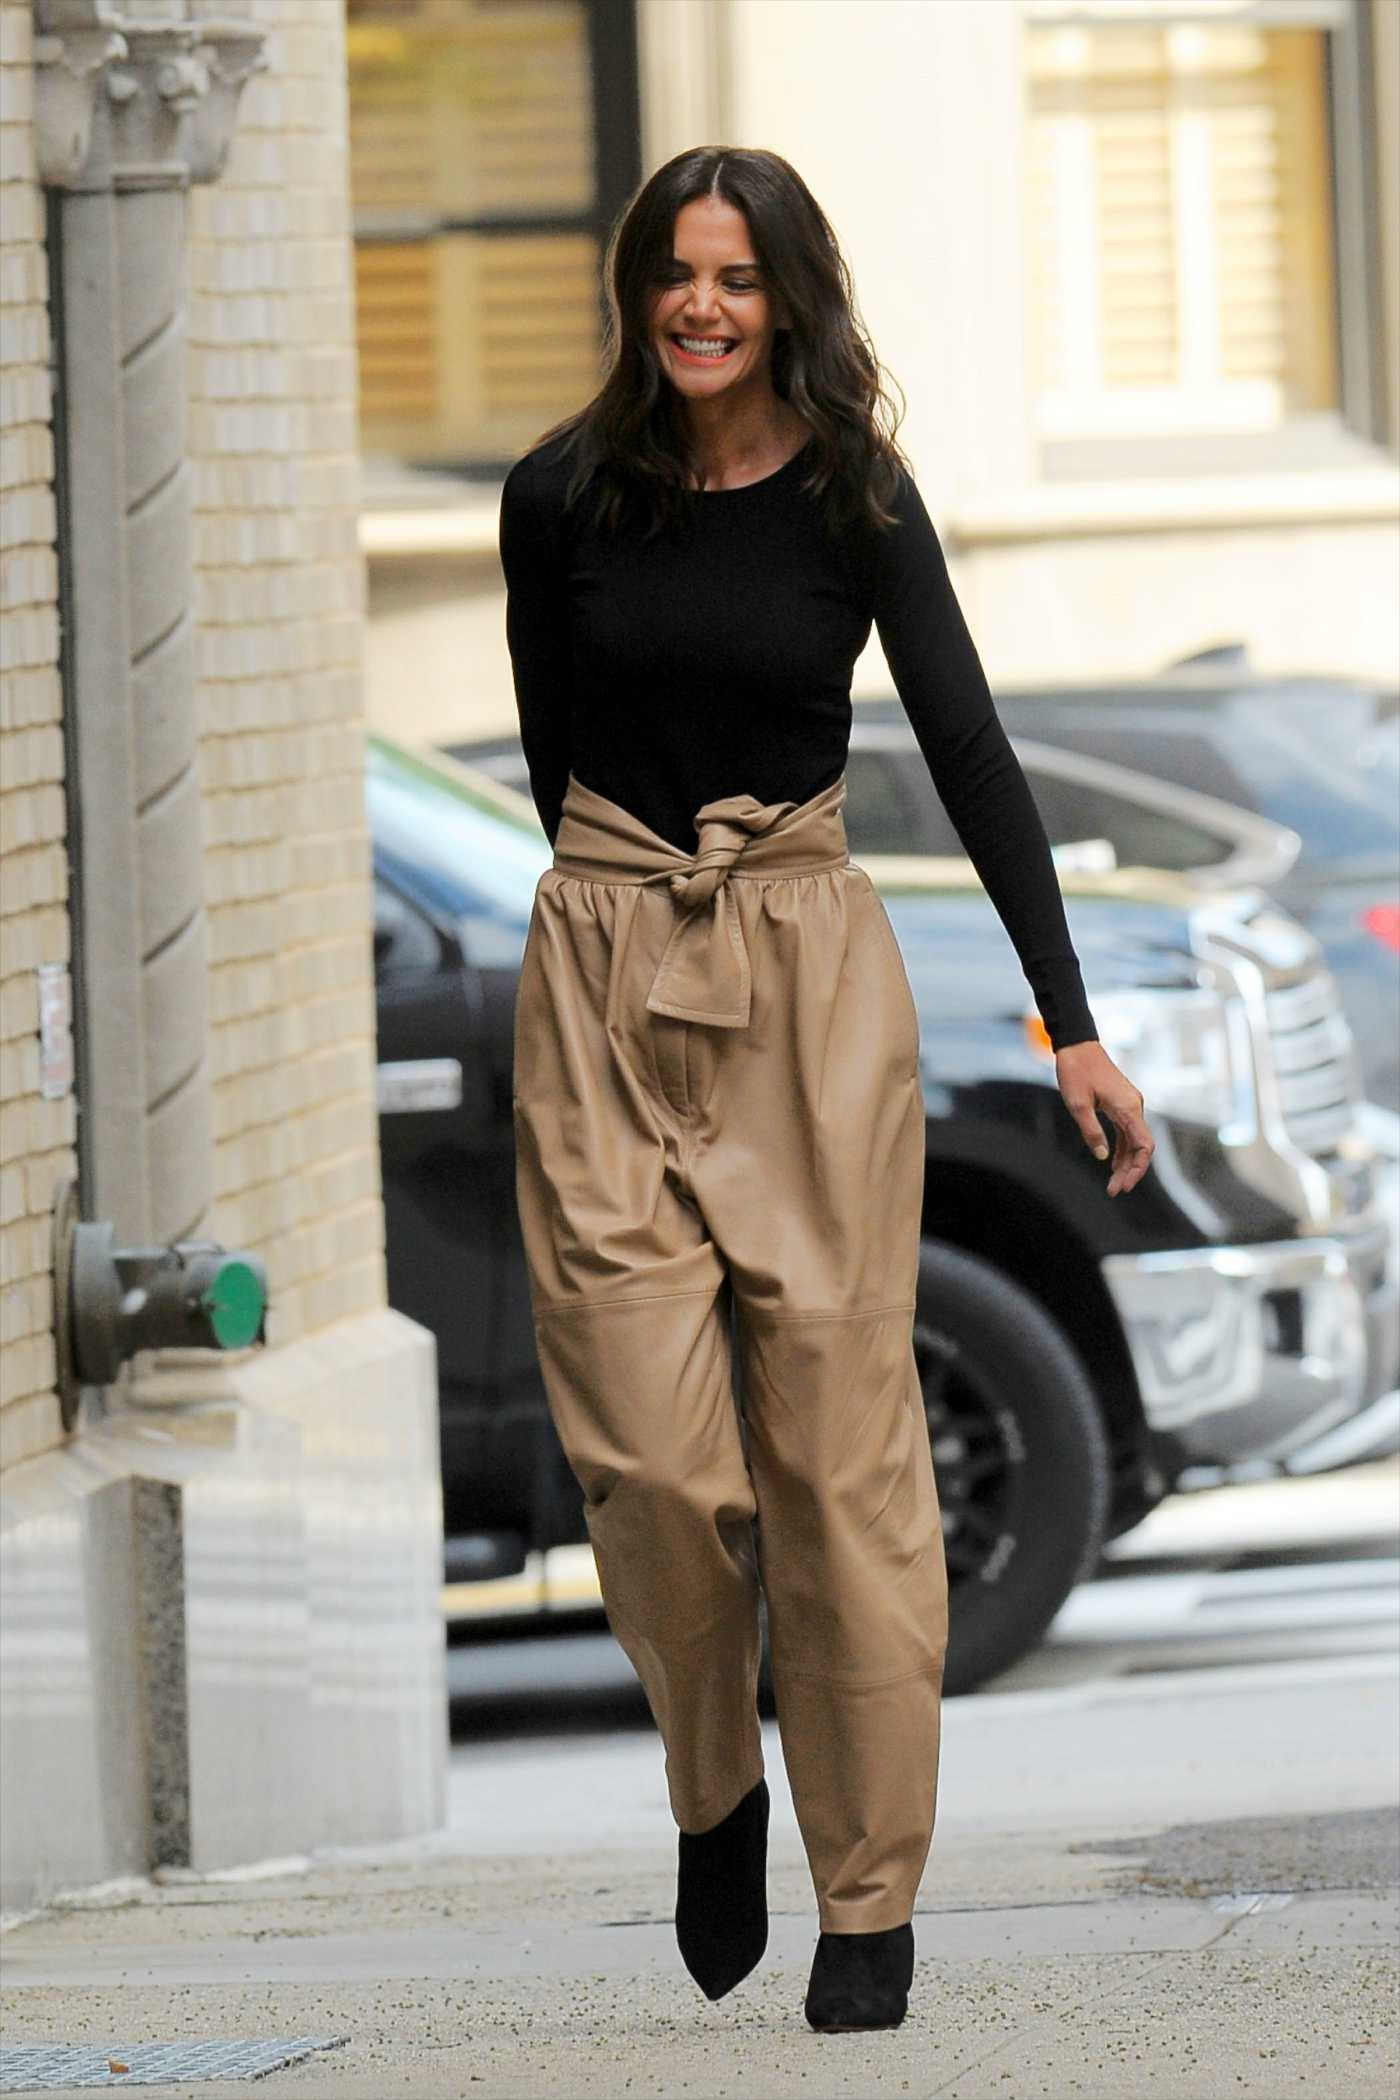 Katie Holmes in a Beige Pants Was Seen Out in New York City 09/09/2019